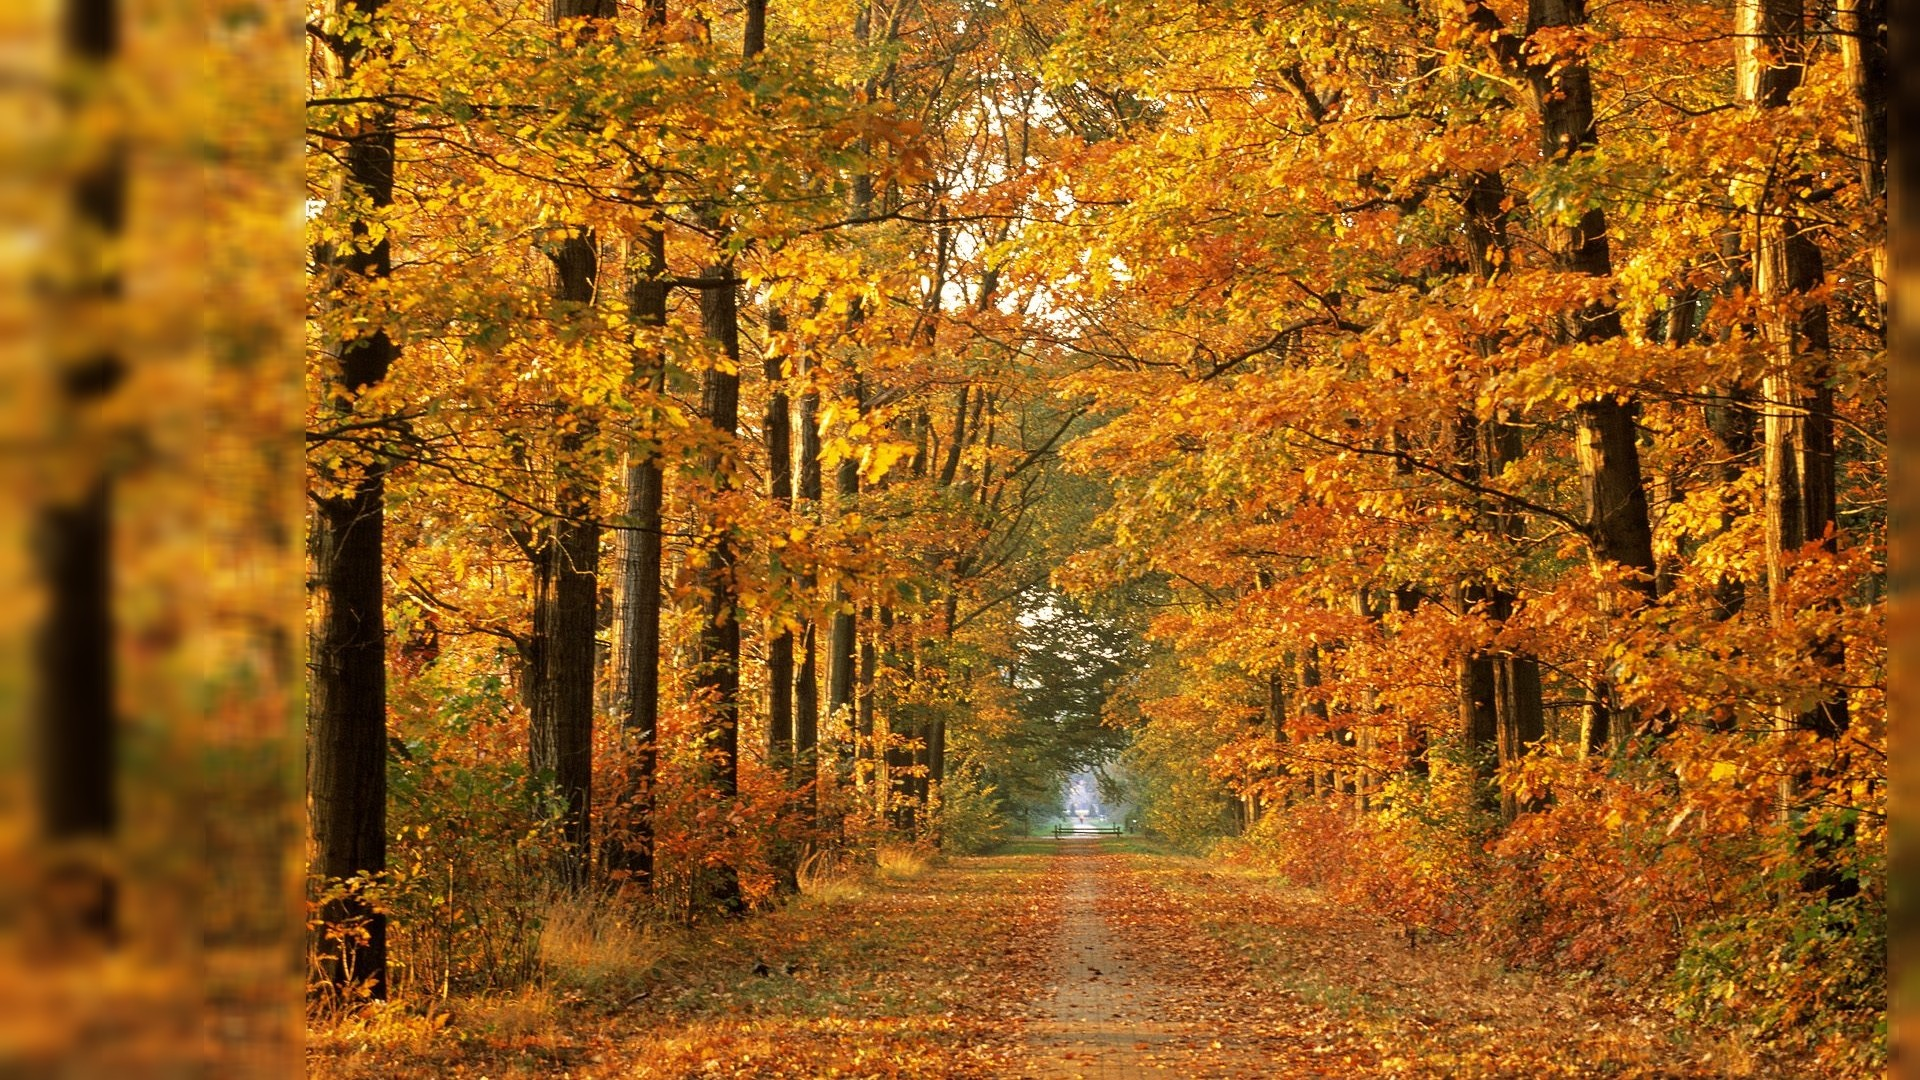 Fall Landscape Wallpapers Free November Background 183 ① Download Free Awesome High